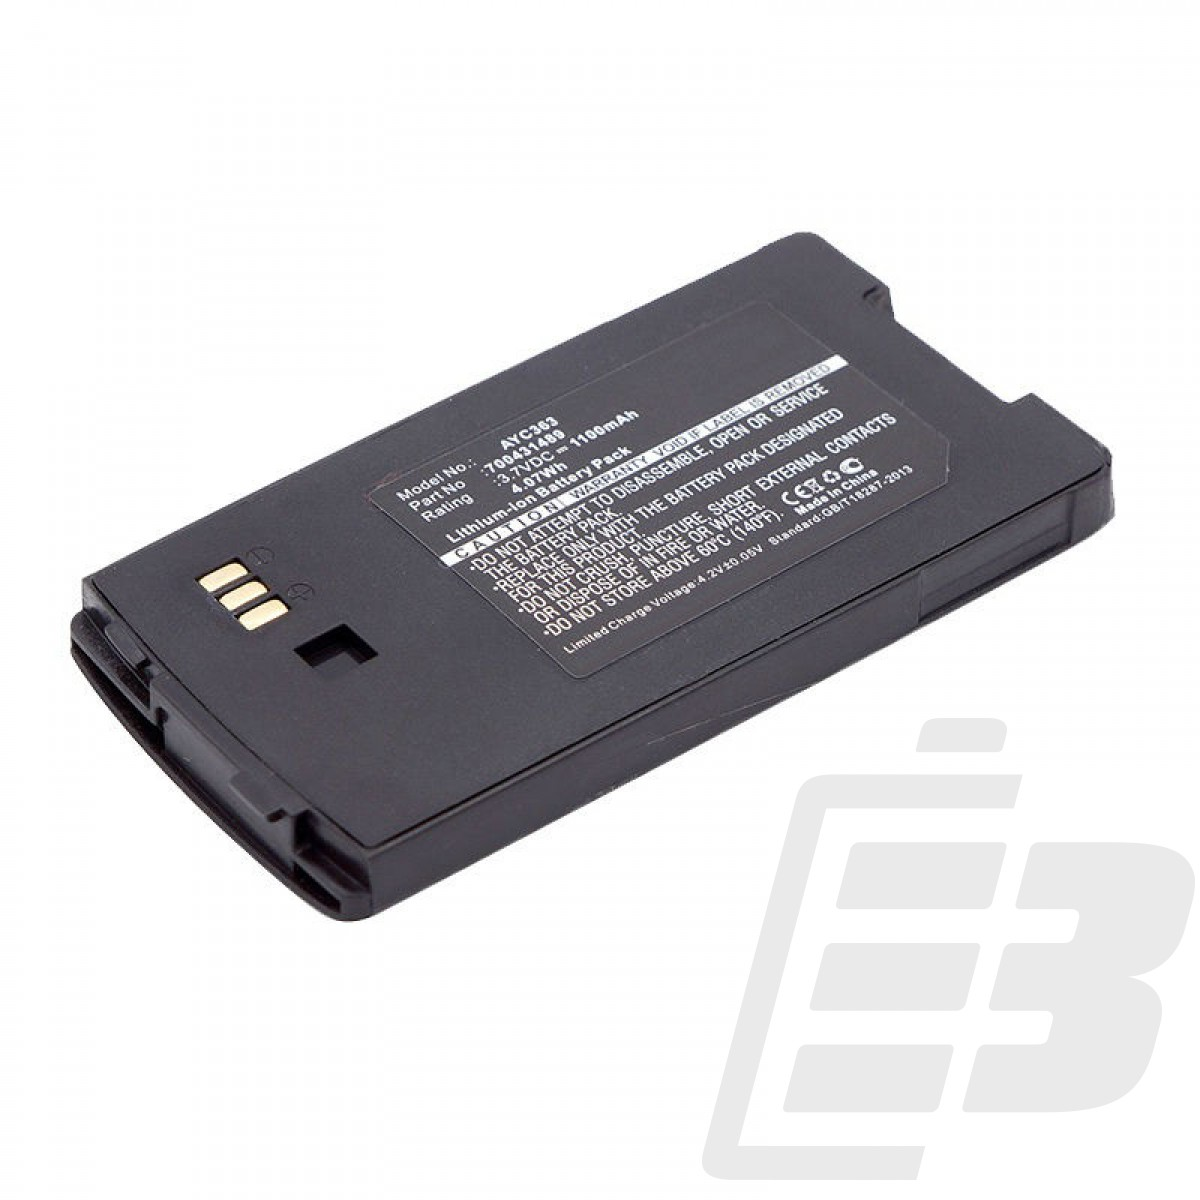 Cordless phone battery Avaya 3631_1